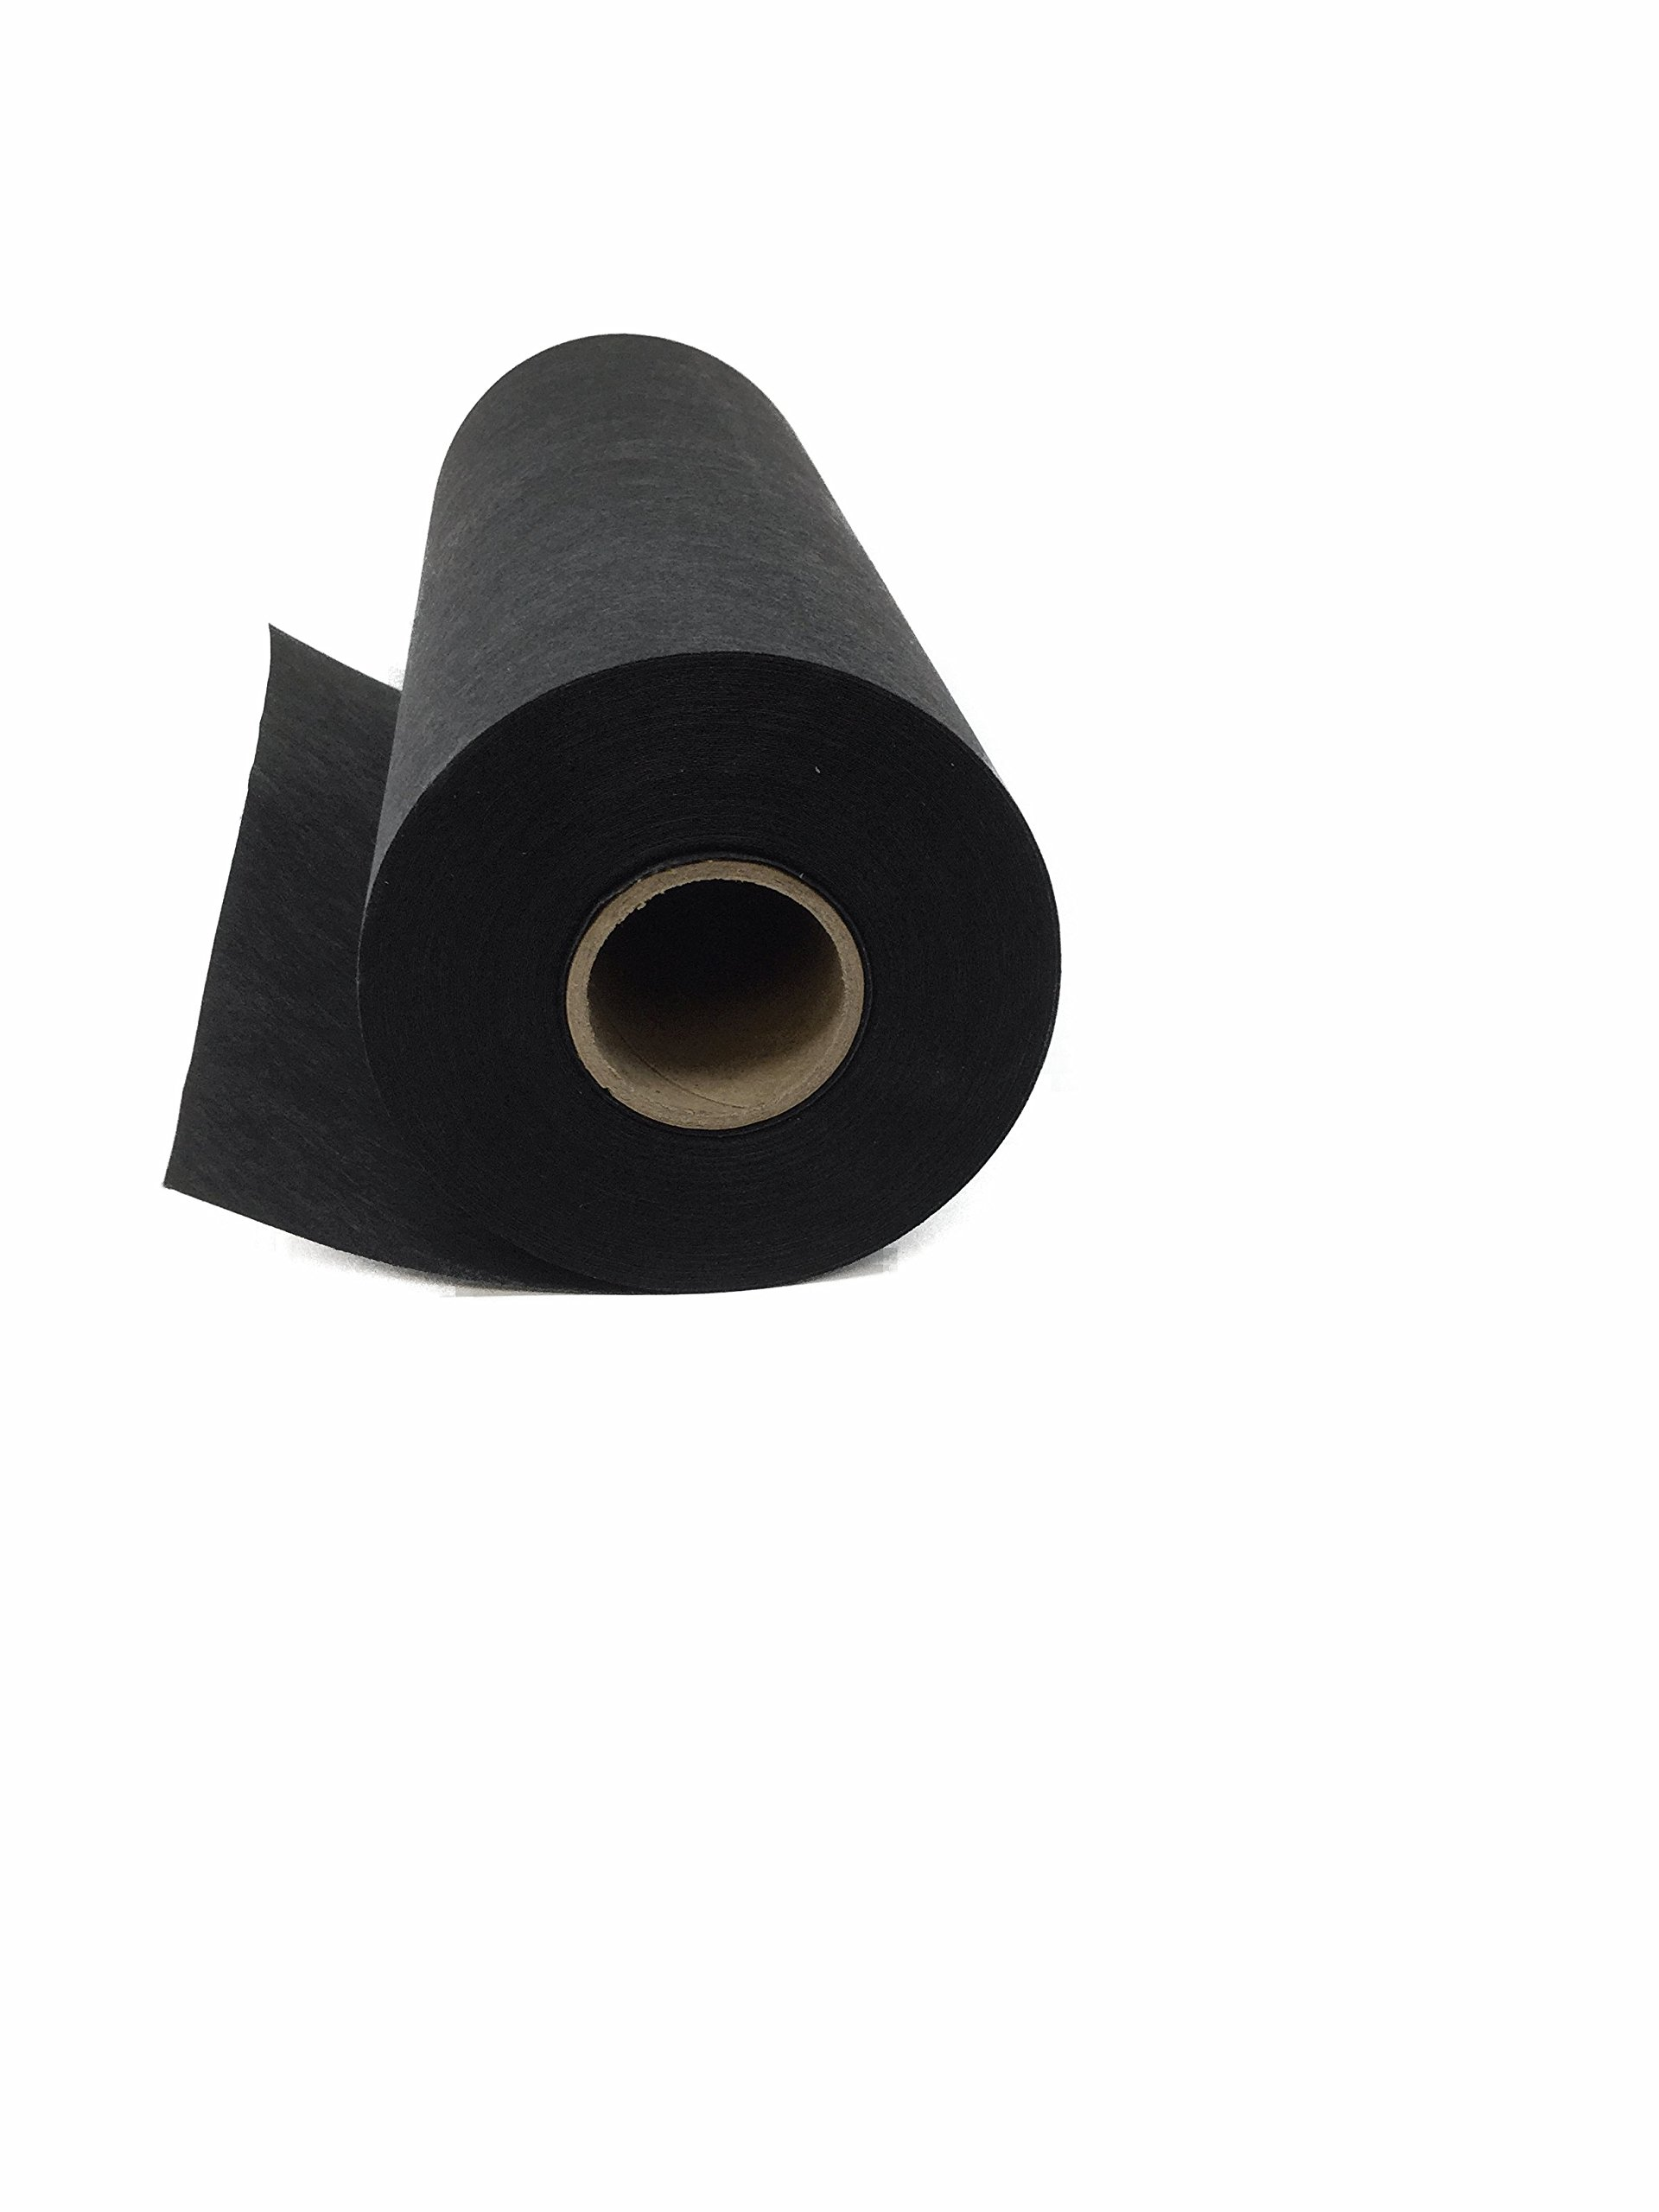 Cut Away Embroidery Stabilizer (Black) 11'' x 25 Yard Roll - 2.5 Ounce Black Cutaway for Machine Embroidery by H.B.I.